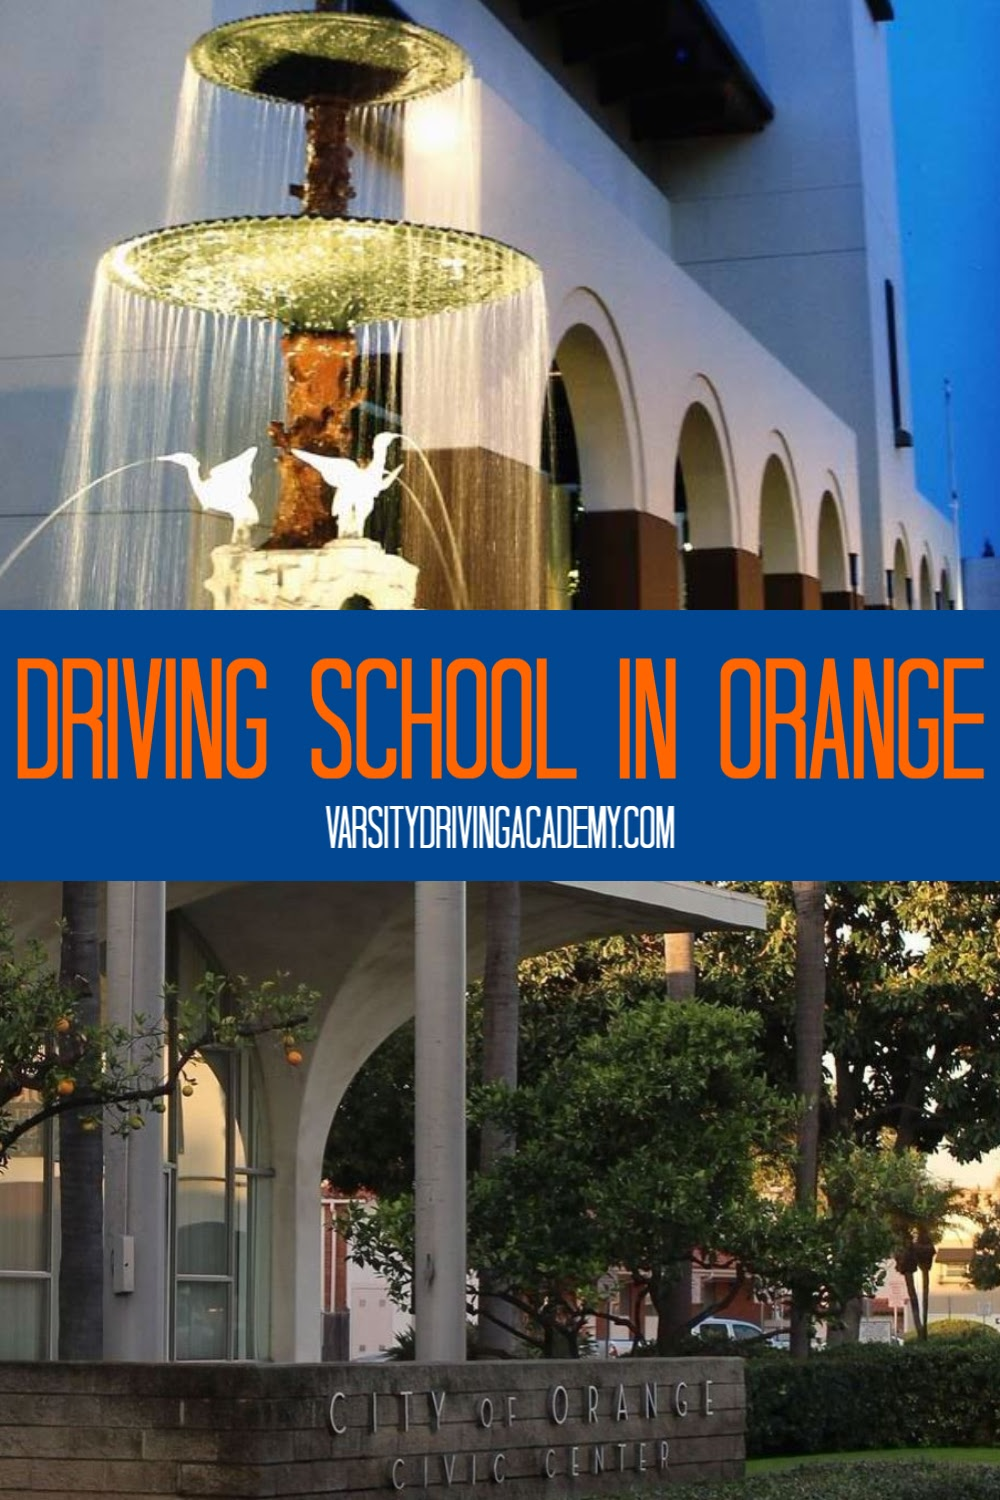 The best driving school in Orange is Varsity Driving Academy where students learn driver's ed in Orange as well as defensive driving tactics.